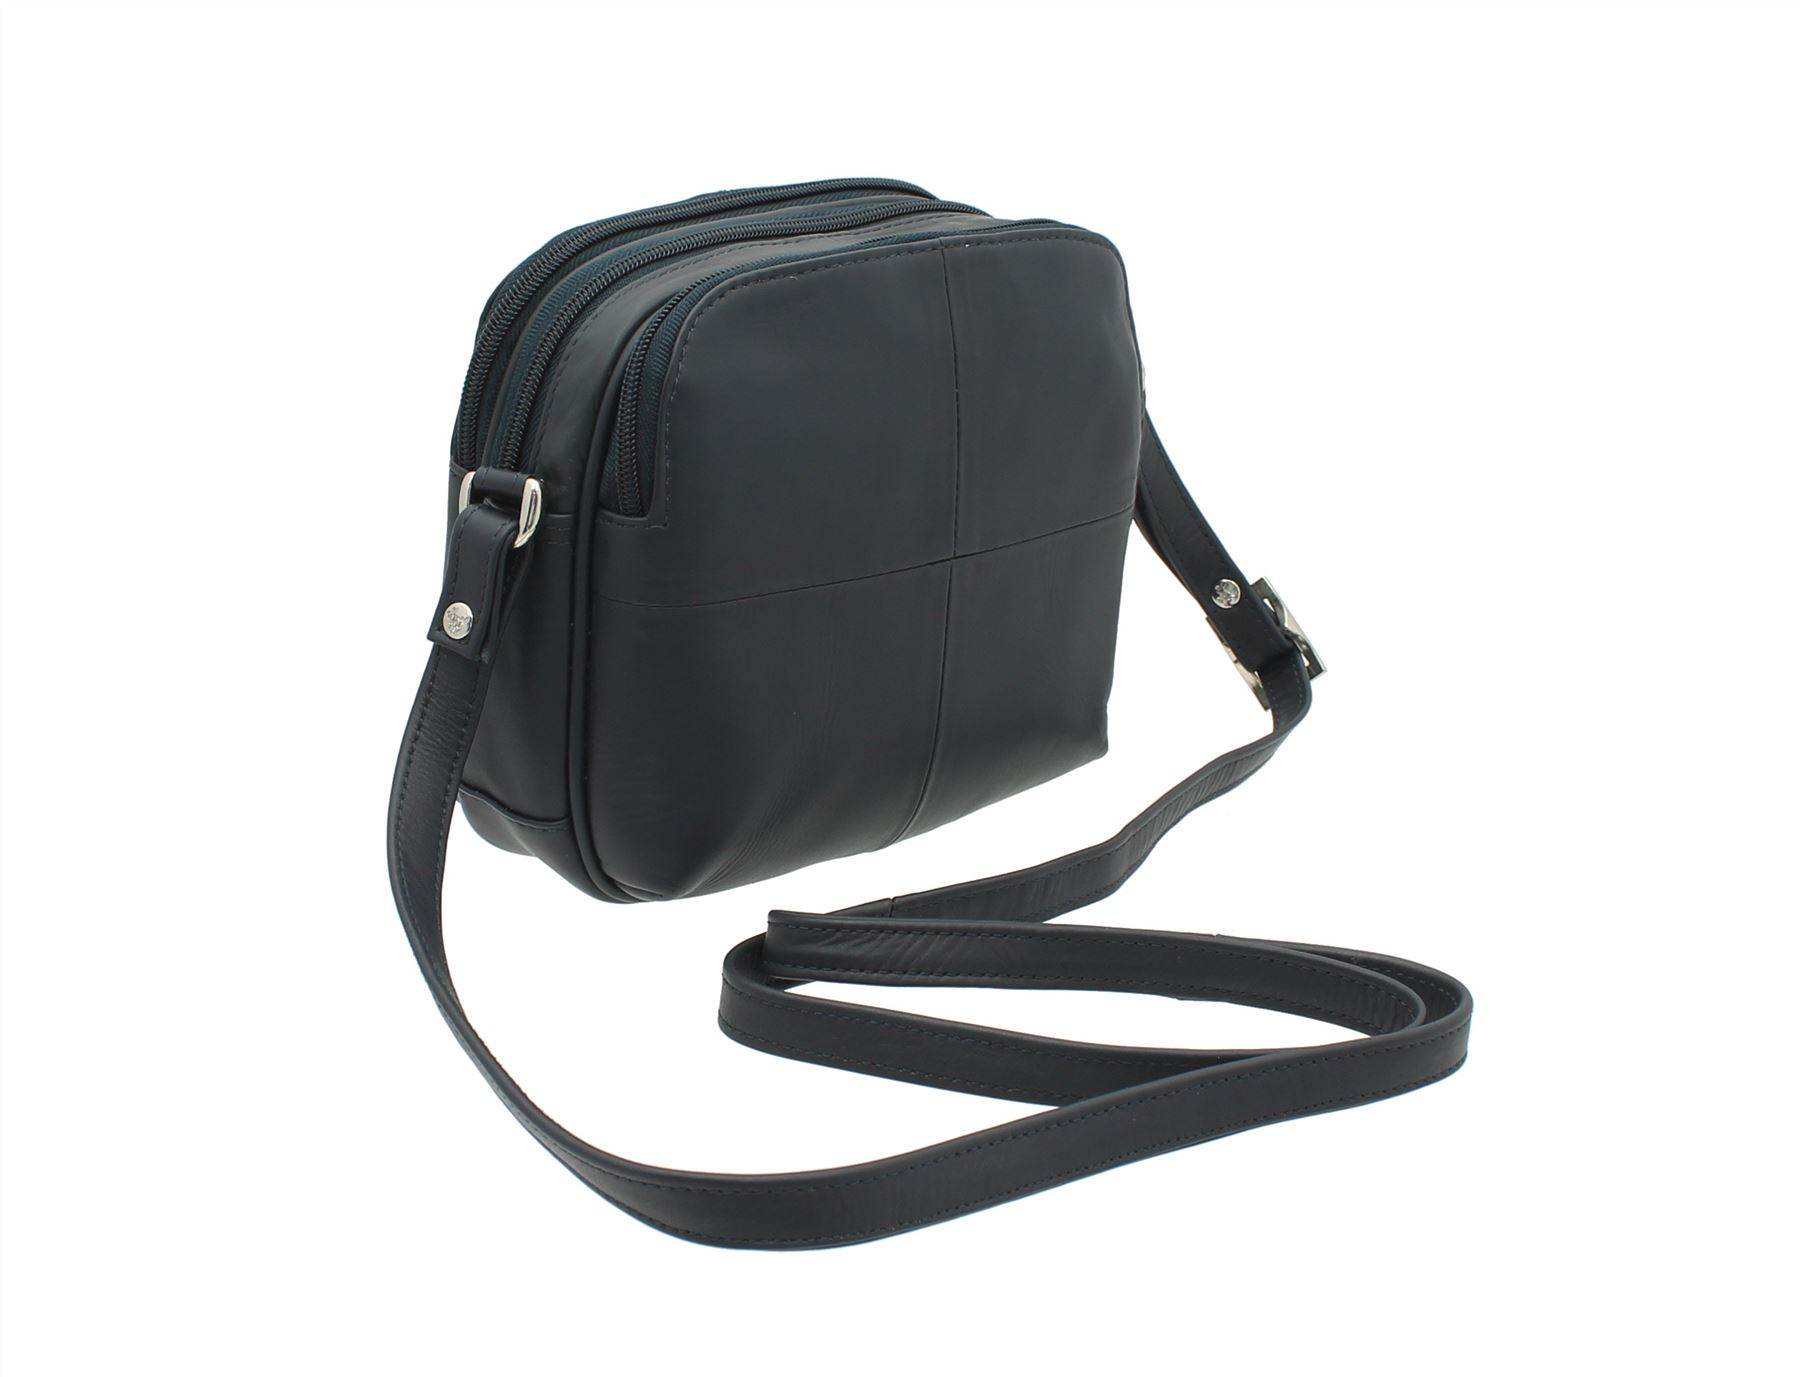 6a8a32c6dba6 Visconti Leather Small Shoulder Bag Style 18939 Navy. About this product.  Picture 1 of 6  Picture 2 of 6 ...